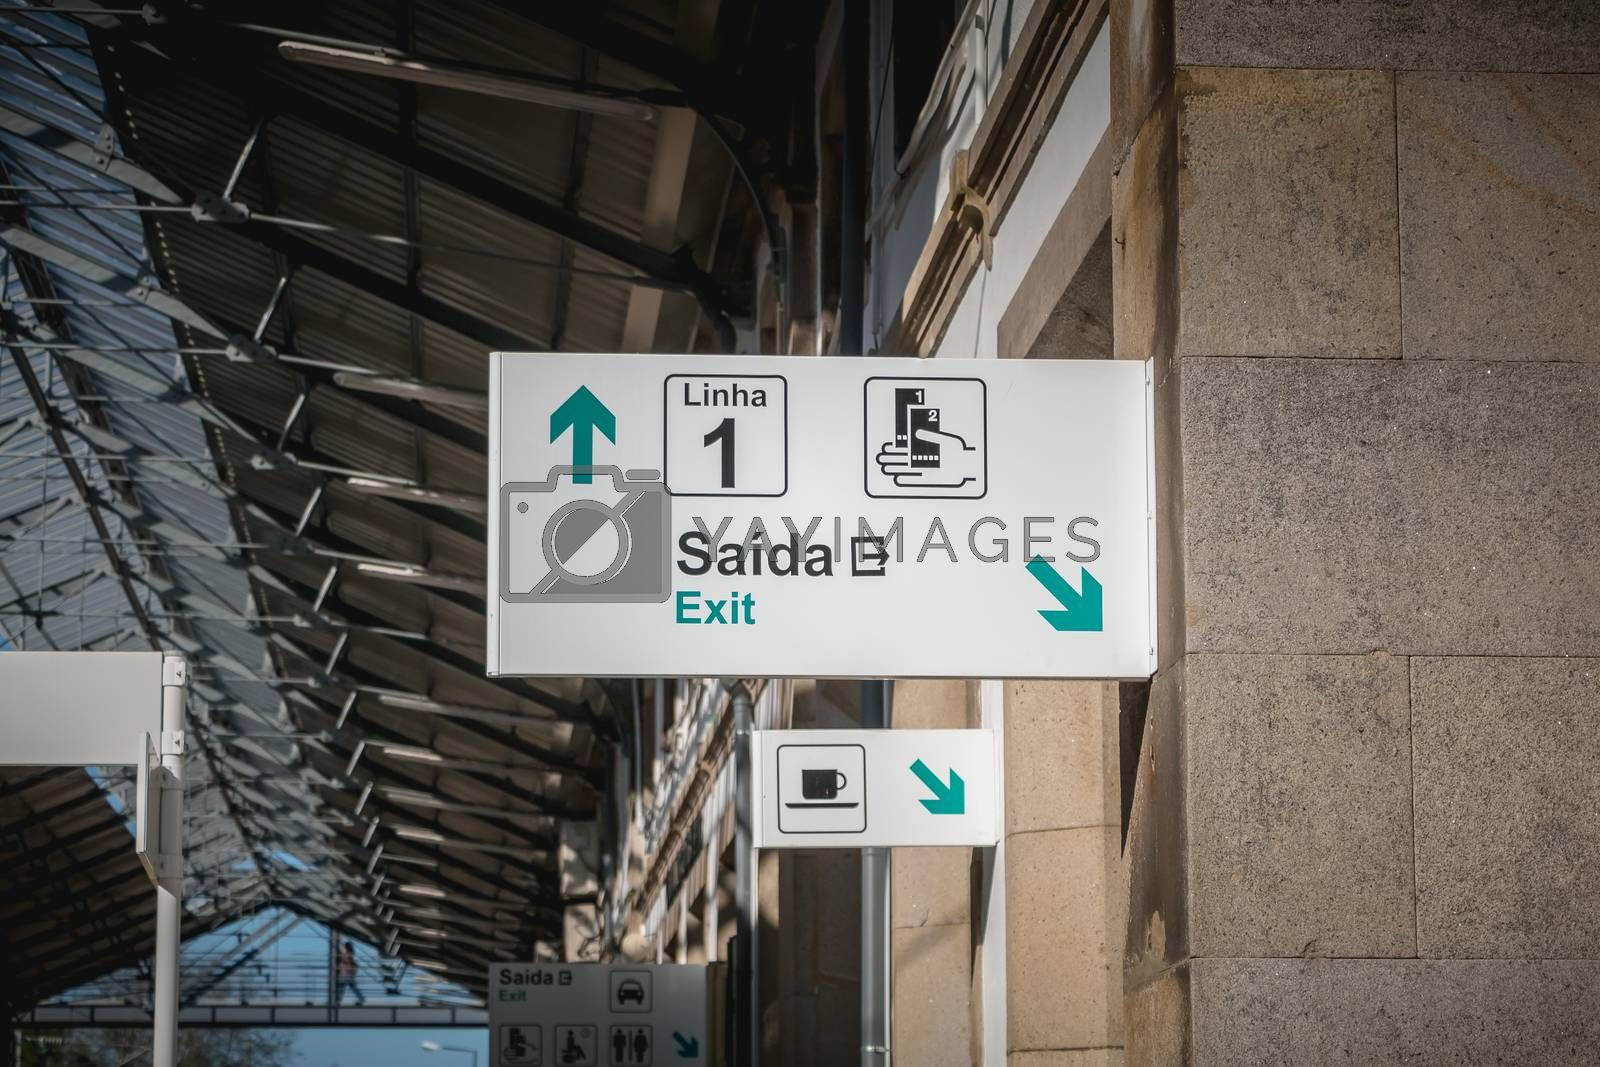 Viana do Castelo, Portugal - May 10, 2018: sign indicating the exit and line 1 in the train station on a spring day